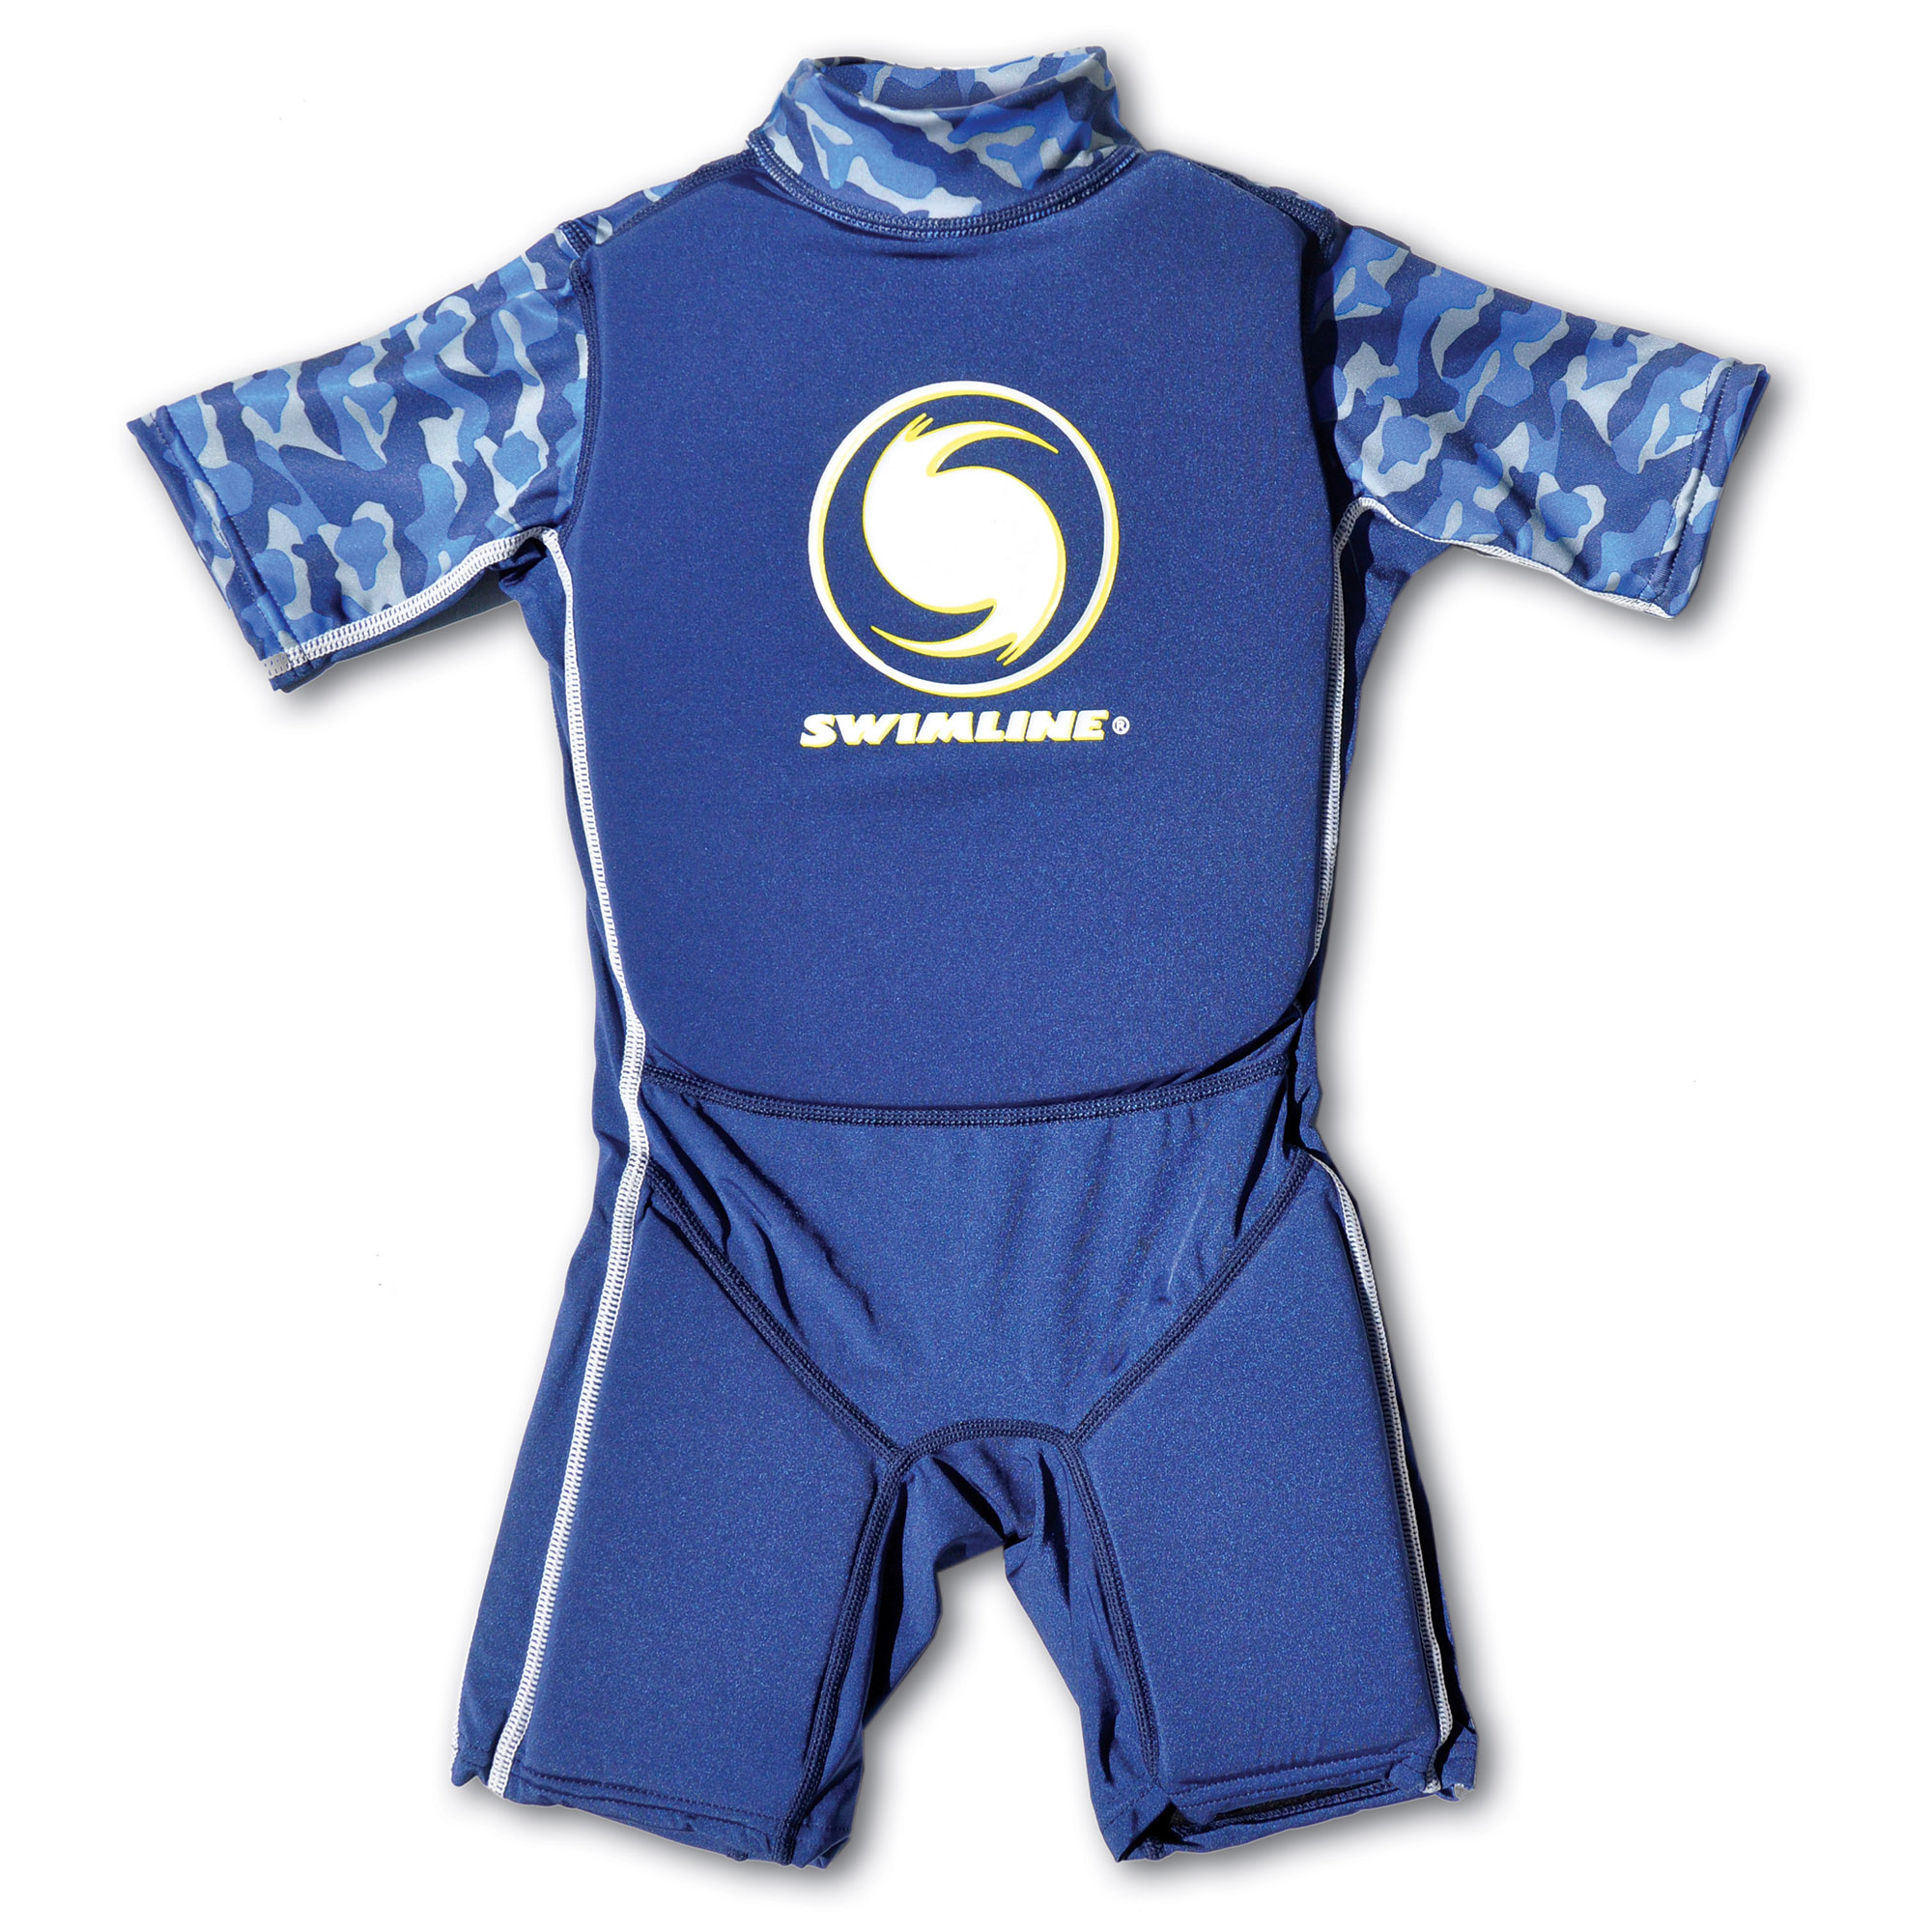 Swimline Blue Lycra Boy's Floating Swim Trainer Wet Suit Life Vest Medium 9894B